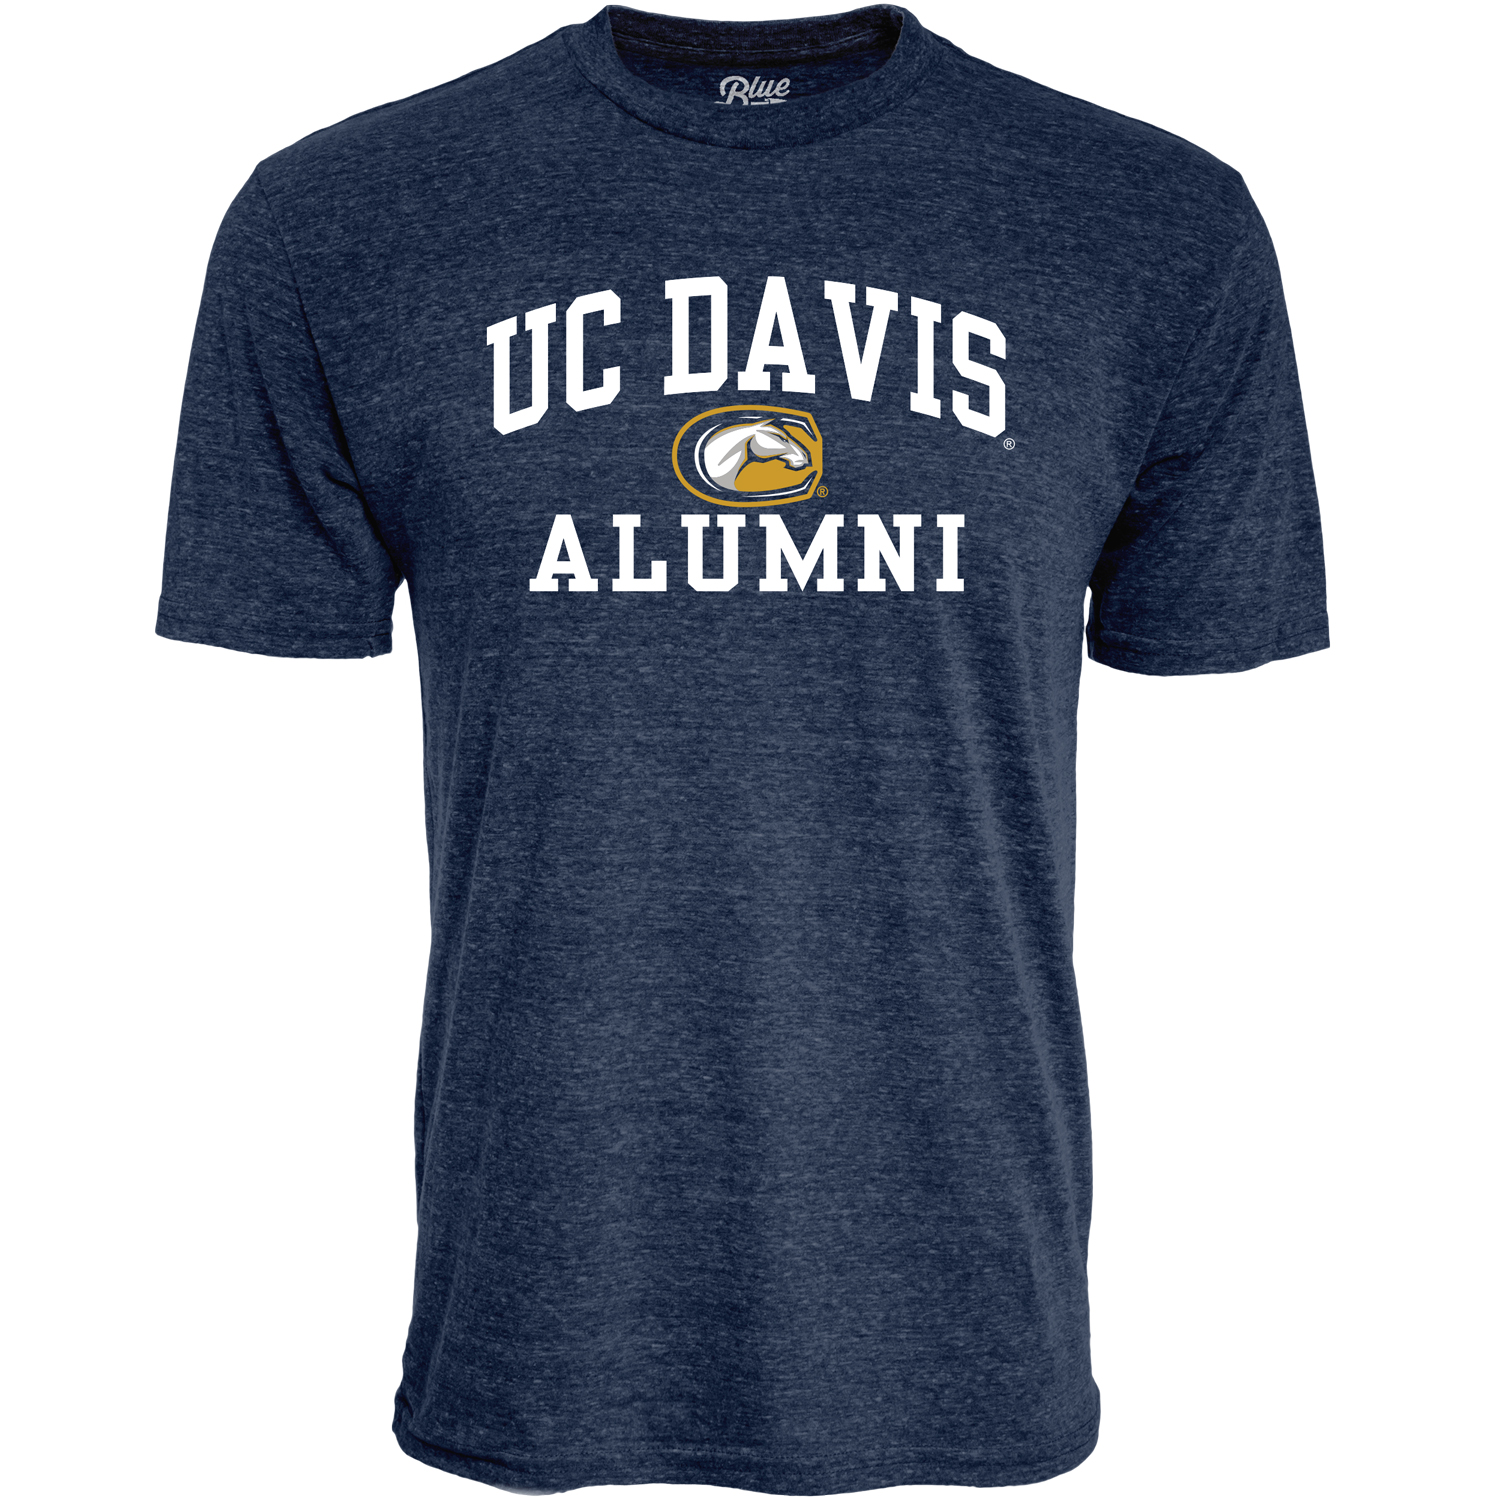 Cover Image For Blue 84 UC Davis Alumni Women's T-Shirt Navy